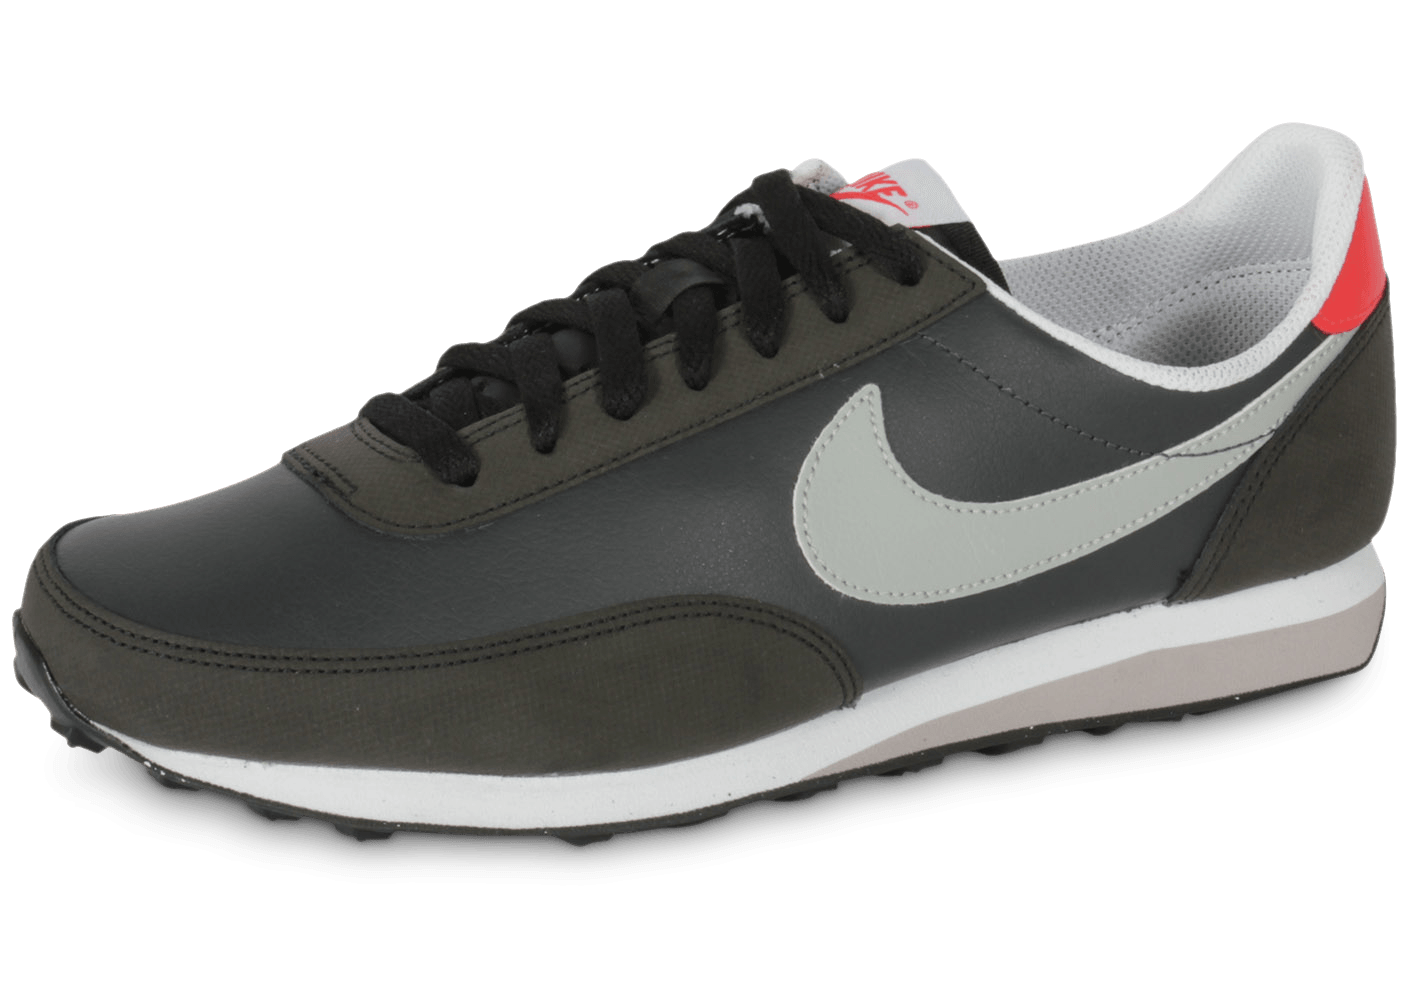 Nike Elite Leather Noire Chaussures Baskets homme Chausport